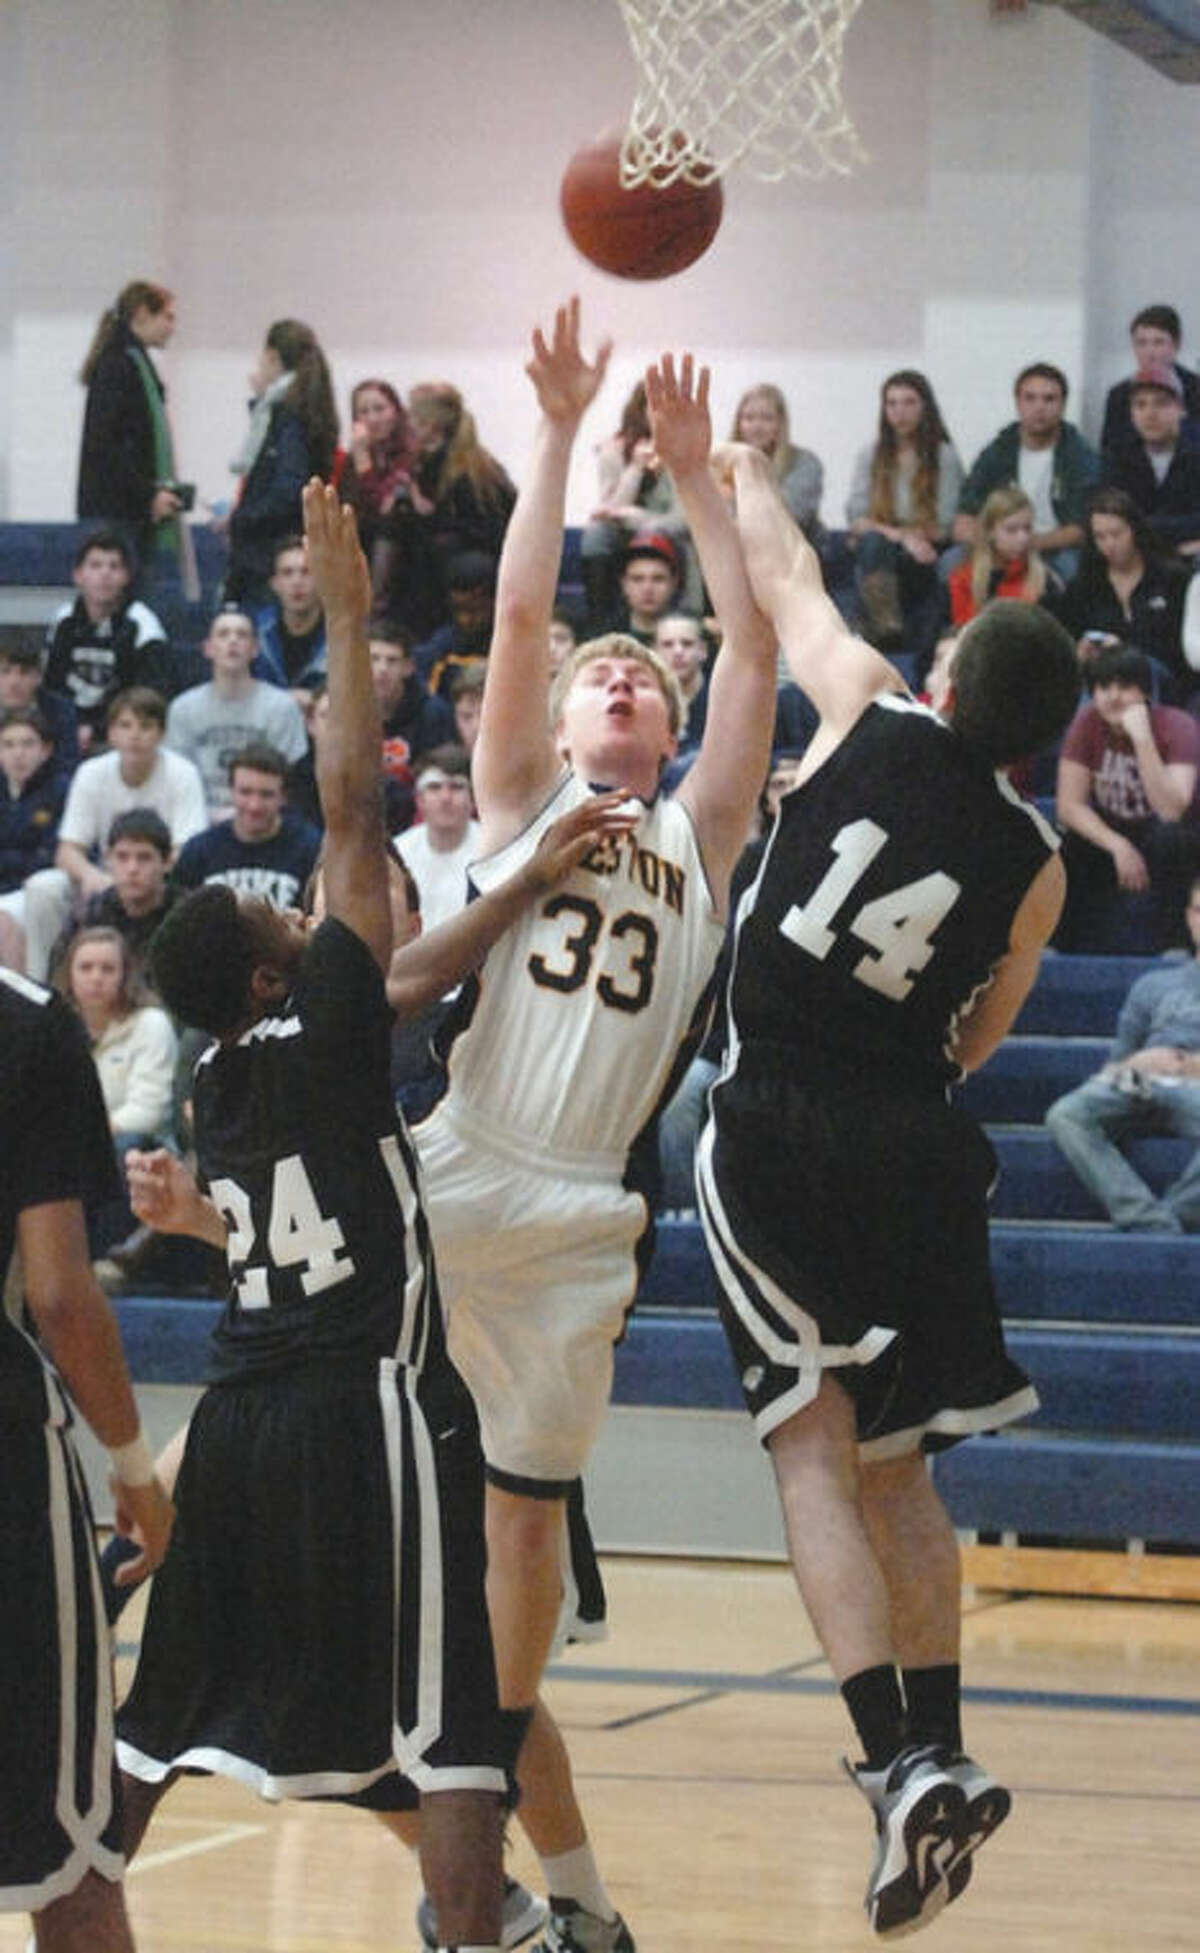 Hour photo/Alex von Kleydorff Weston's # 33 Erik Damnen-Brower stretches to grab a rebound between a pair of Trumbull players during Wednesday night's non-conference clash in Weston. Dammen-Brower and the Trojans grabbed a 70-56 victory.